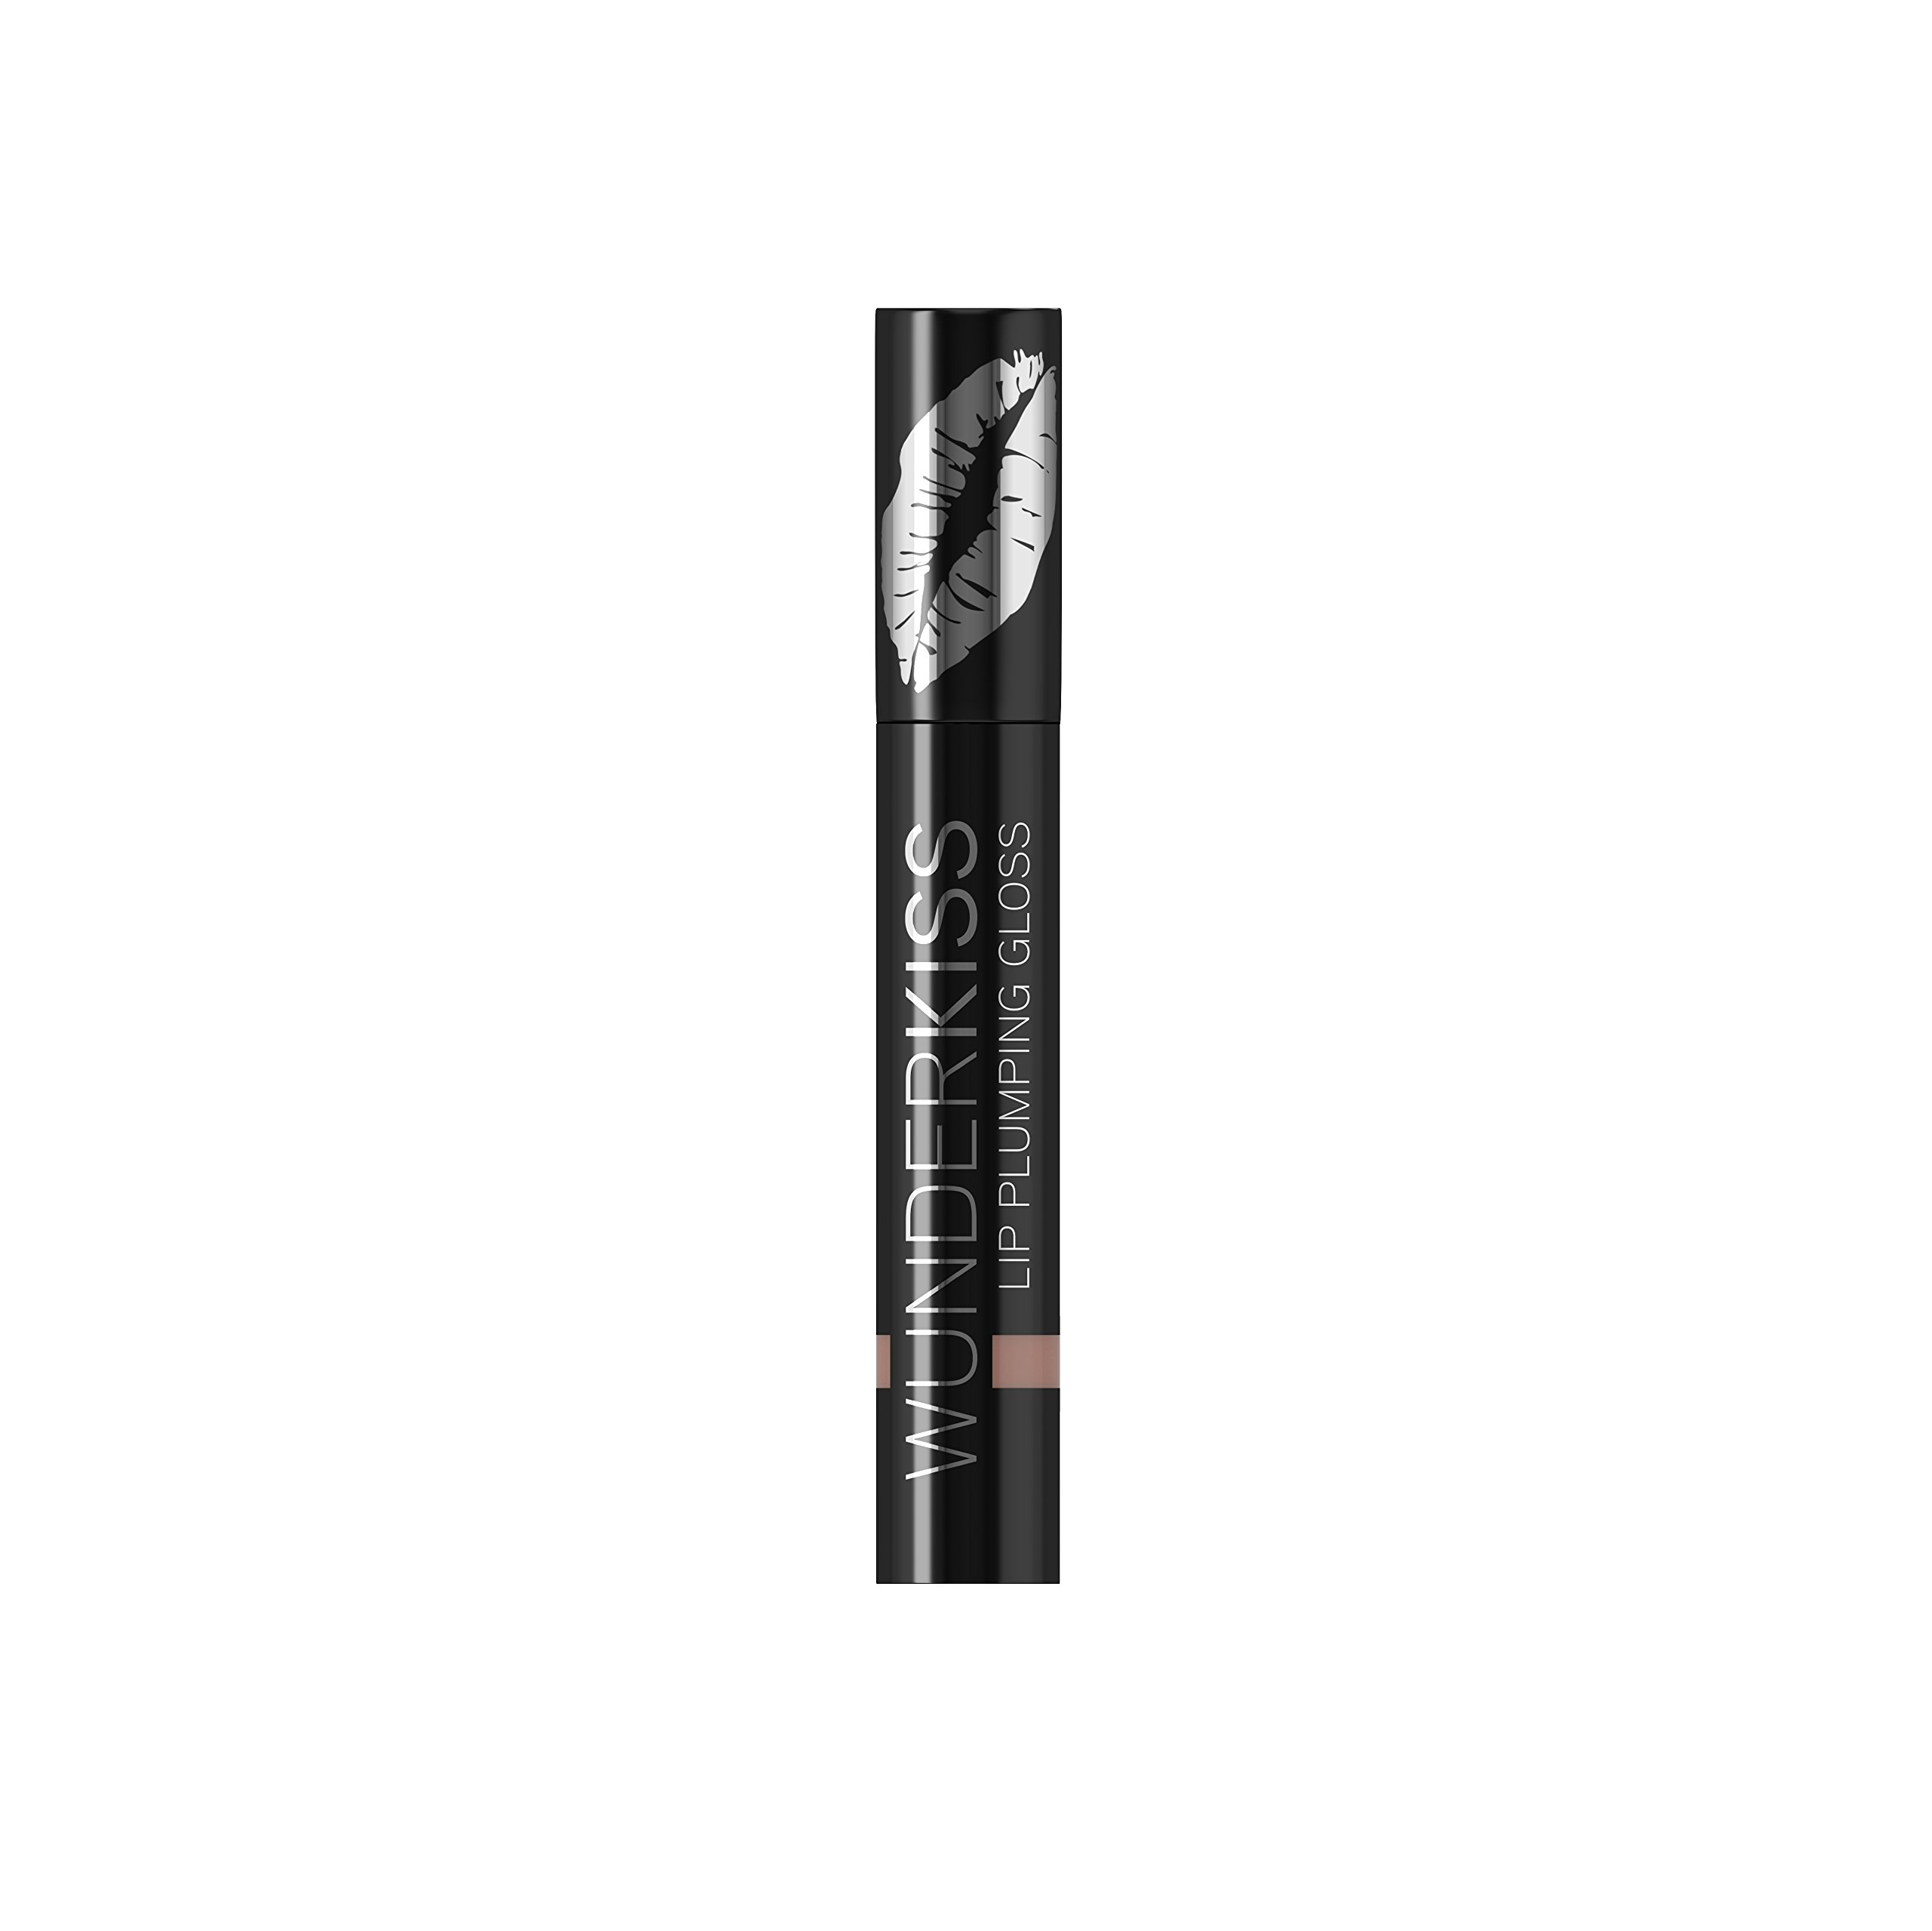 WUNDER2 WUNDERKISS Plumping Lip Gloss - Lip Plumper for Hydrated and Voluminous Lips, Nude Color